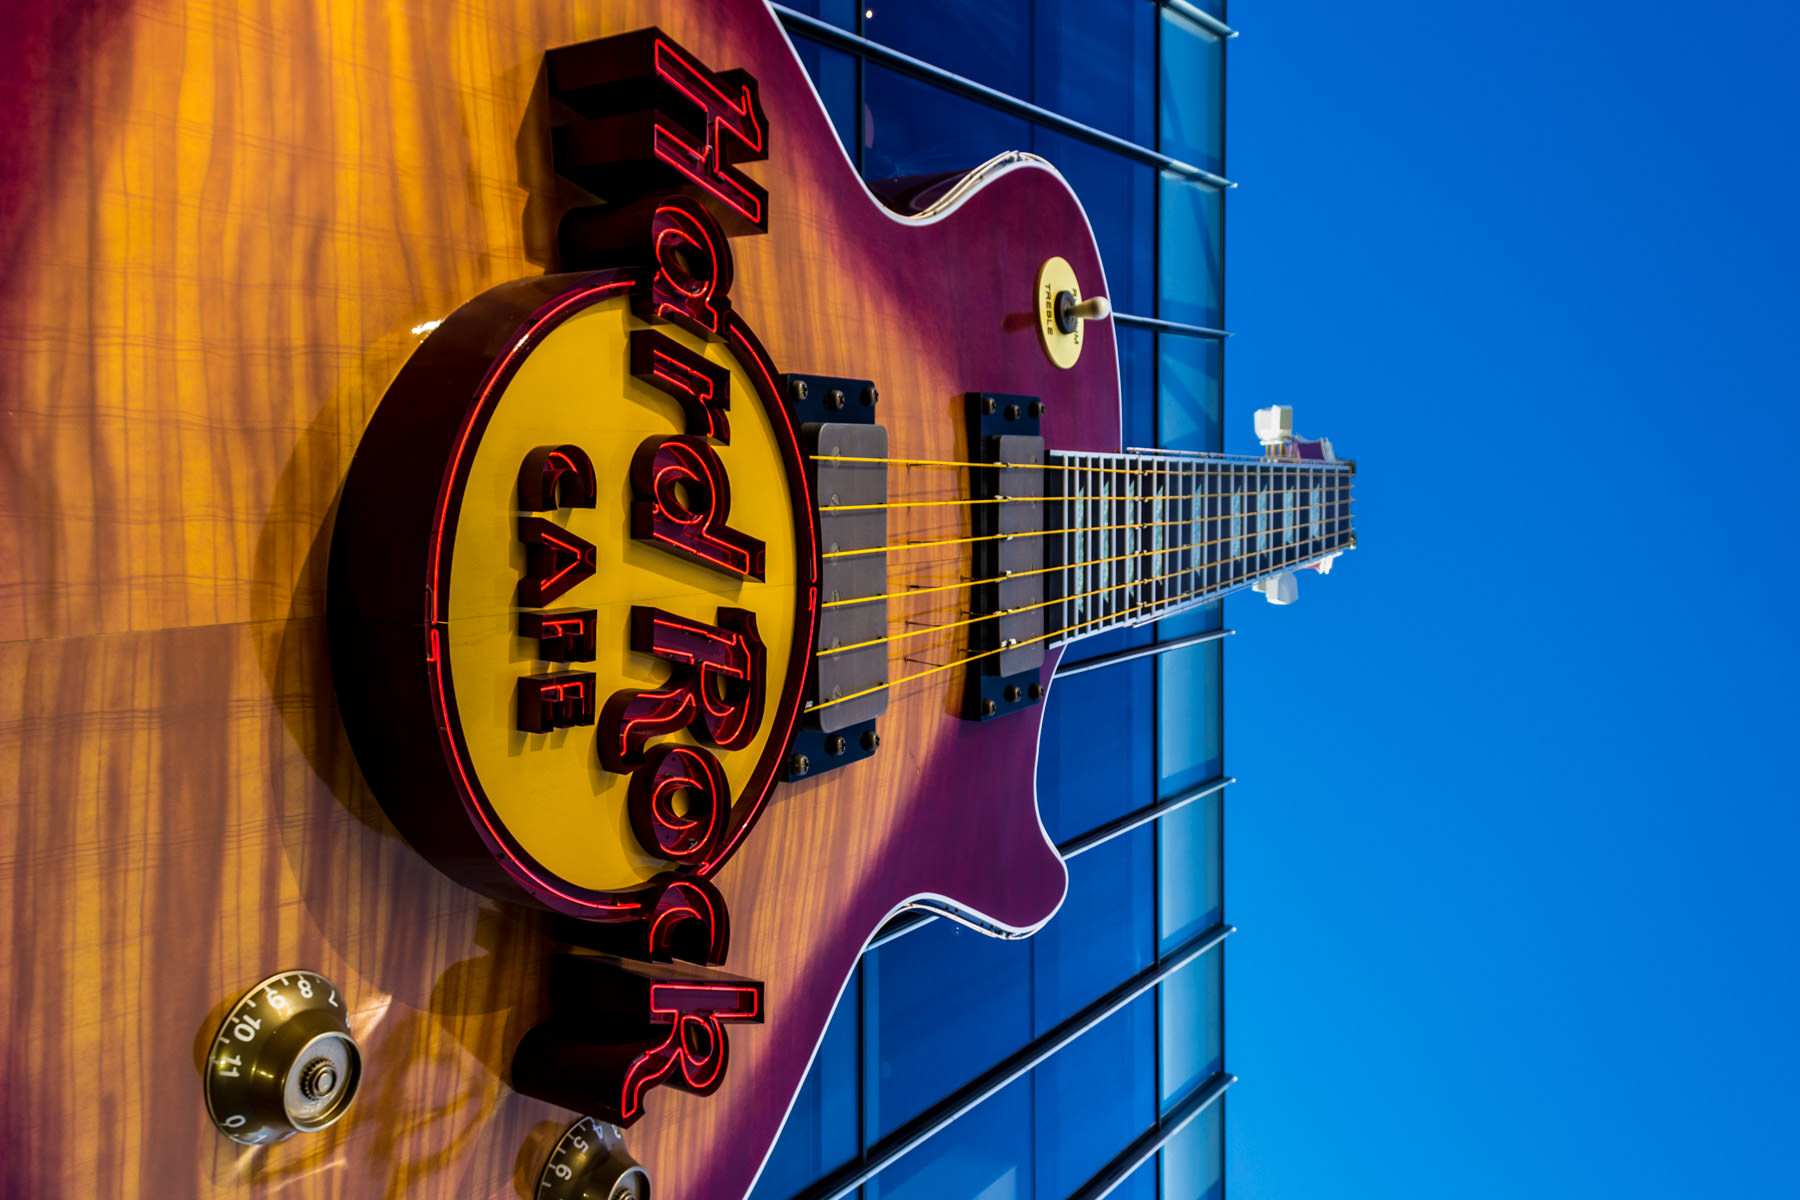 The guitar-shaped sign for the Hard Rock Cafe in Las Vegas.